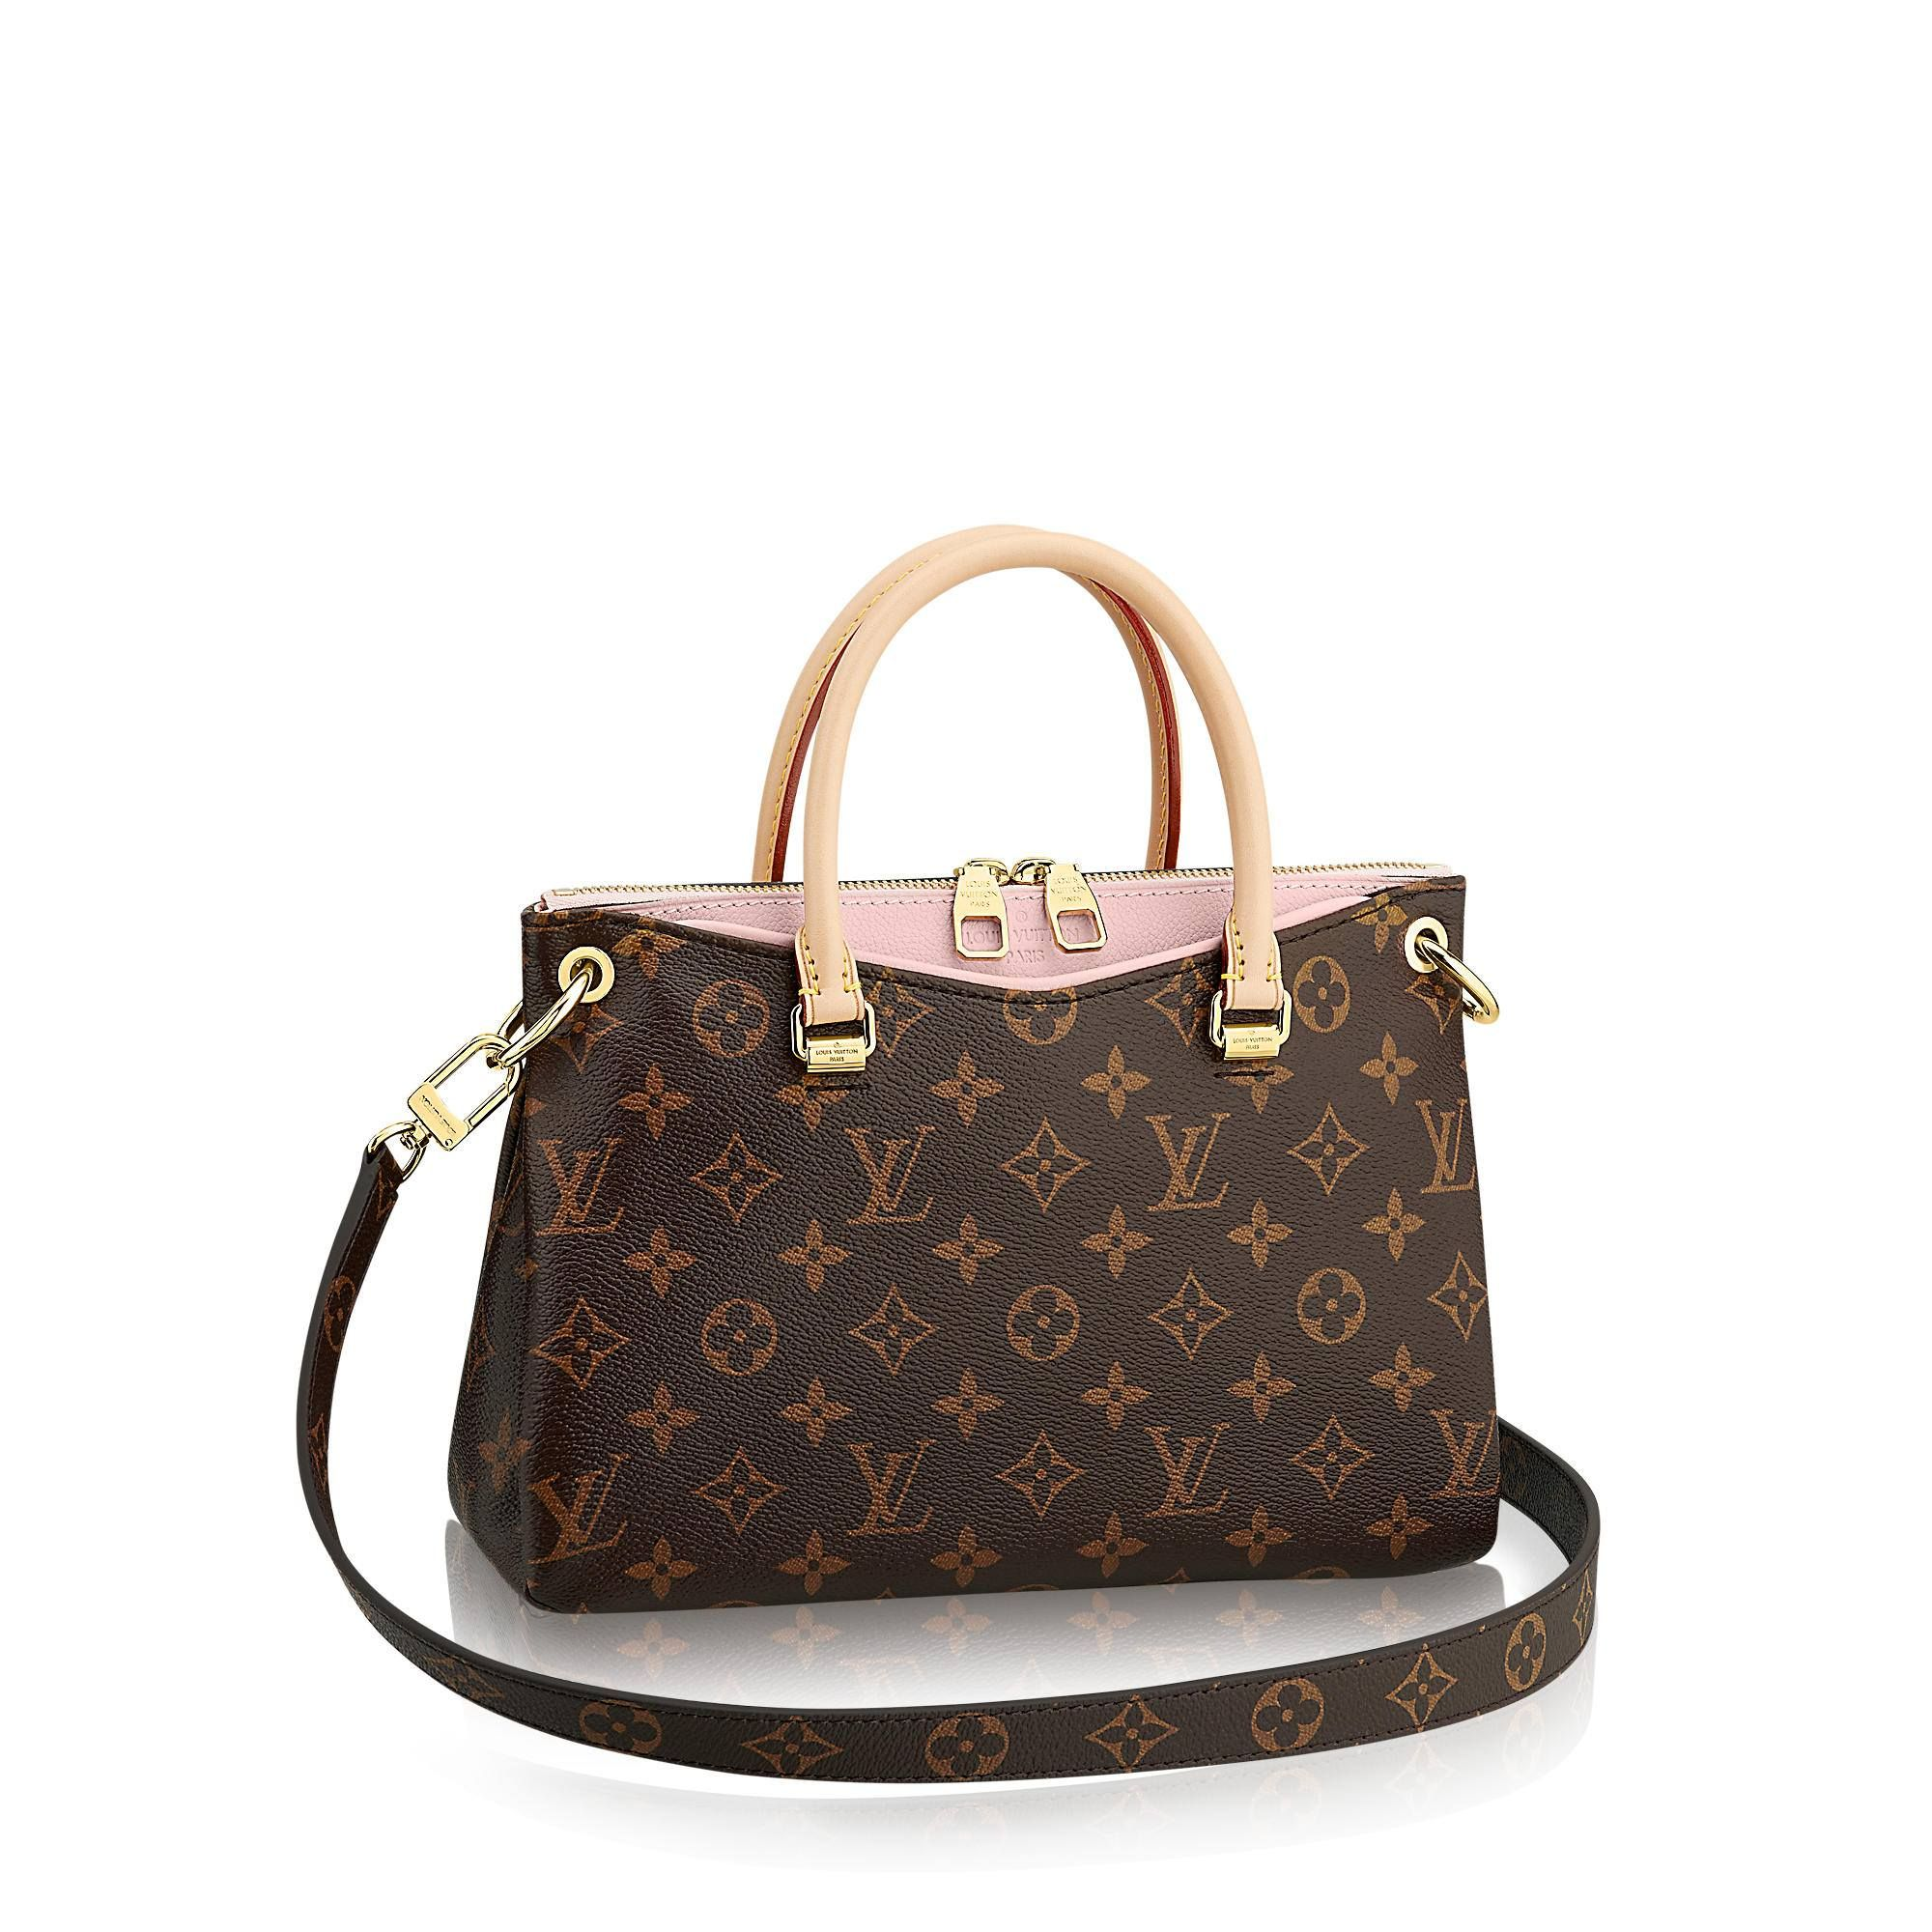 A Louis Vuitton Signature Handbag Read More Fashionpro Me